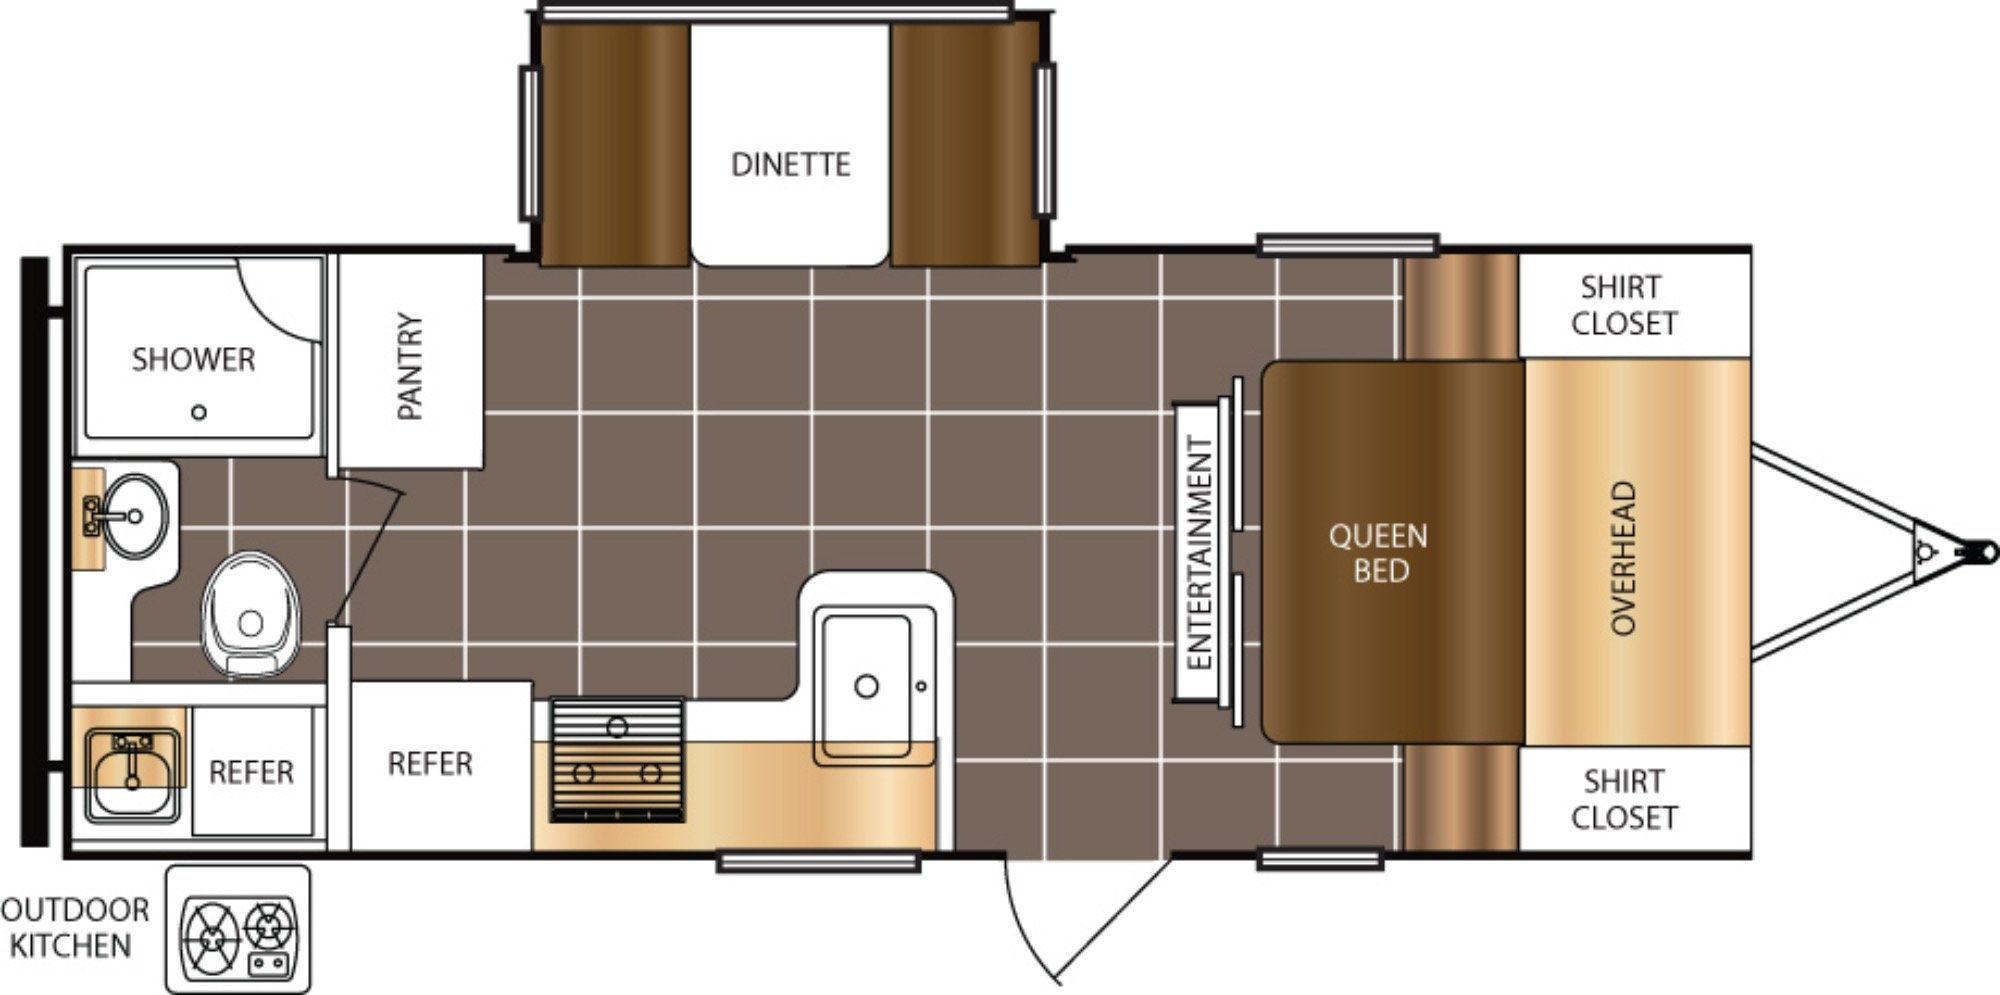 View Floor Plan for 2017 PRIME TIME TRACER AIR 231AIR